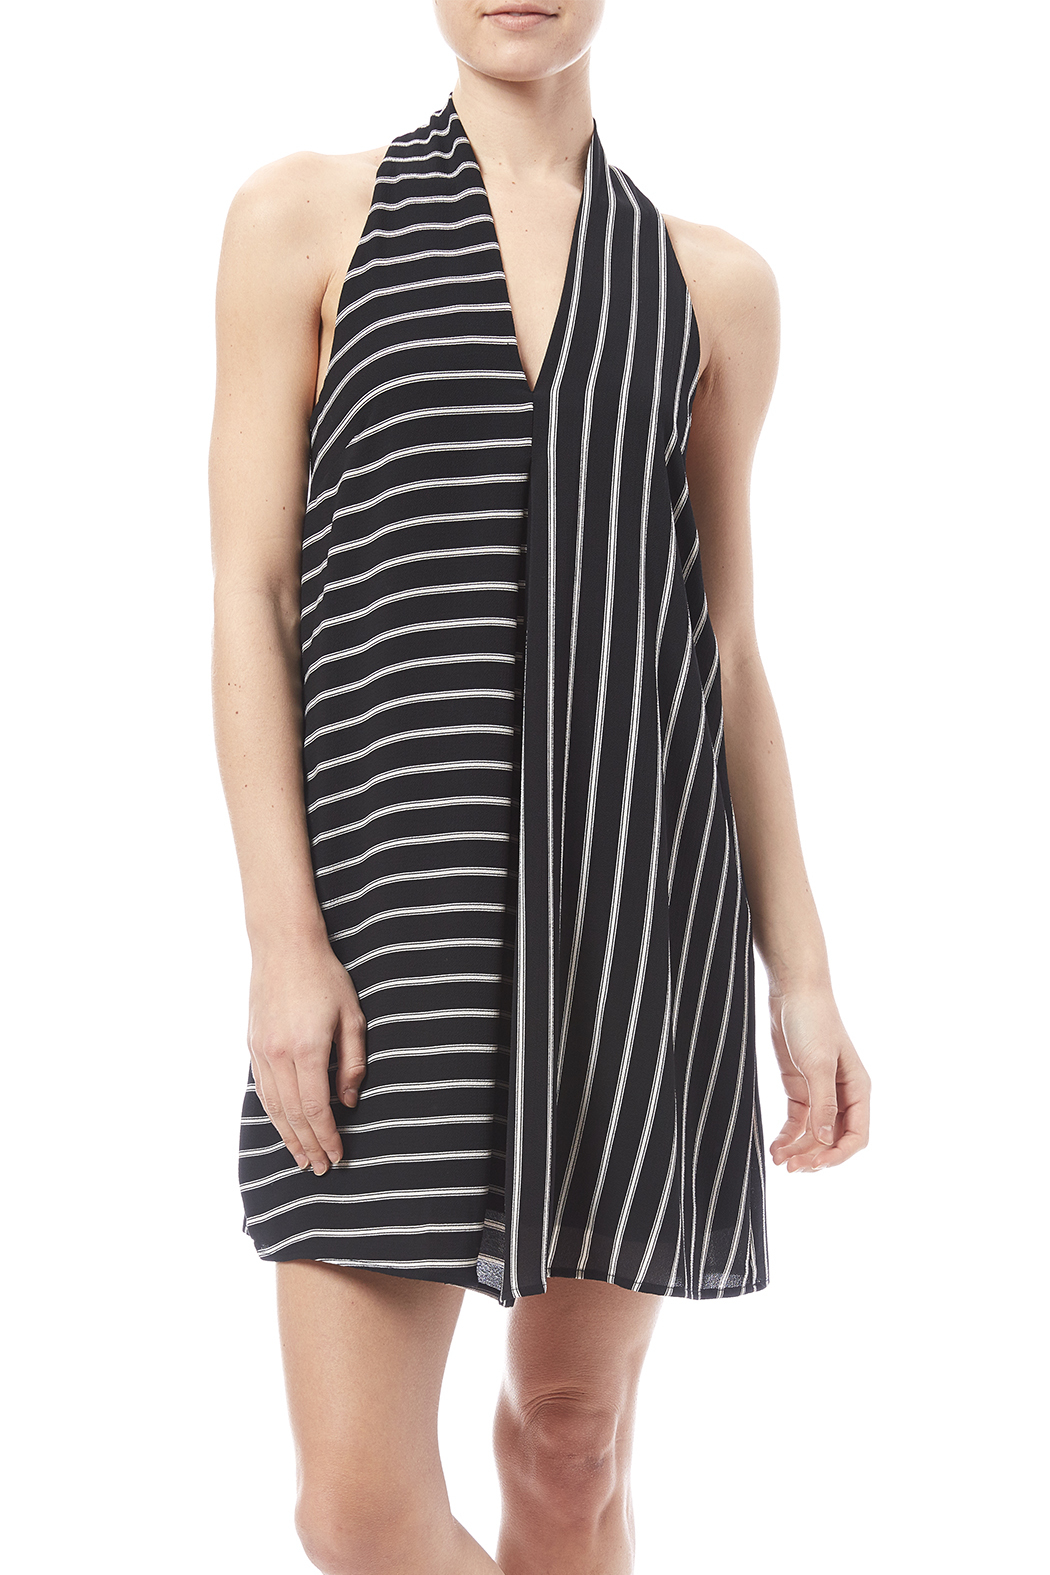 HYFVE Black And White Dress - Main Image